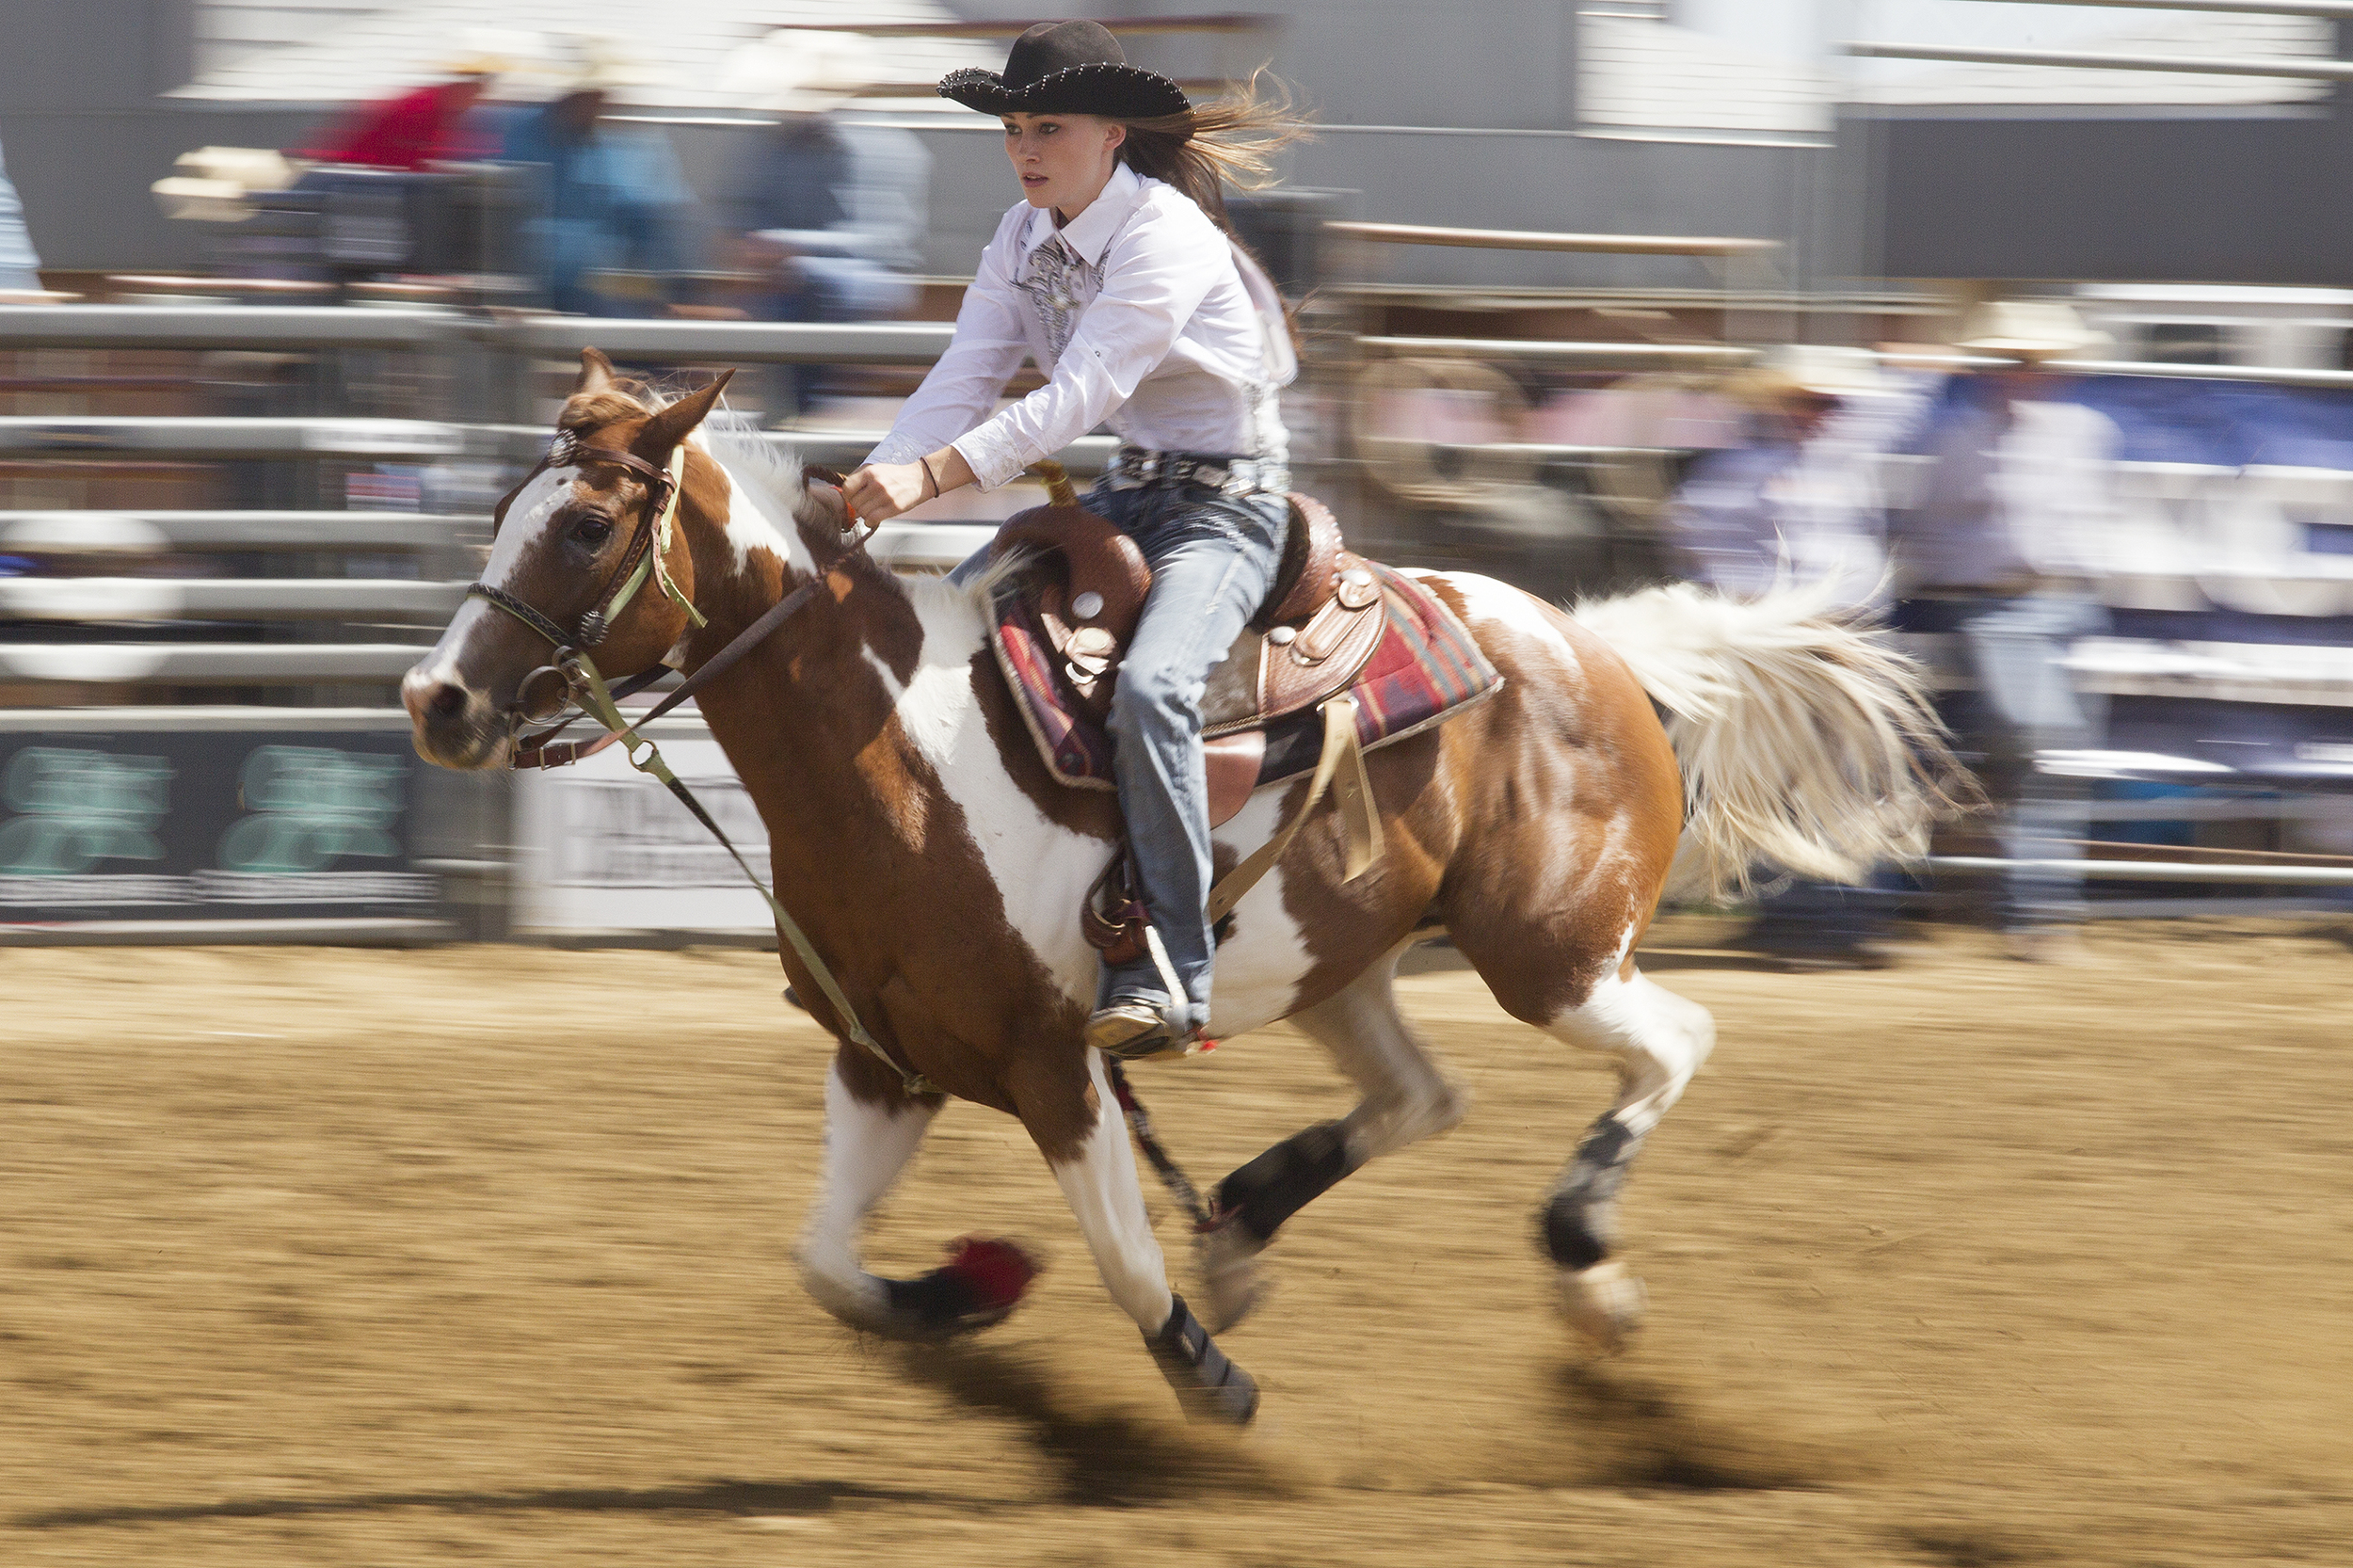 Destiny Shafer of Waddell, Aris., races through the pole bending course during the second performance of the National High School Finals Rodeo Monday morning at Morningside Park.